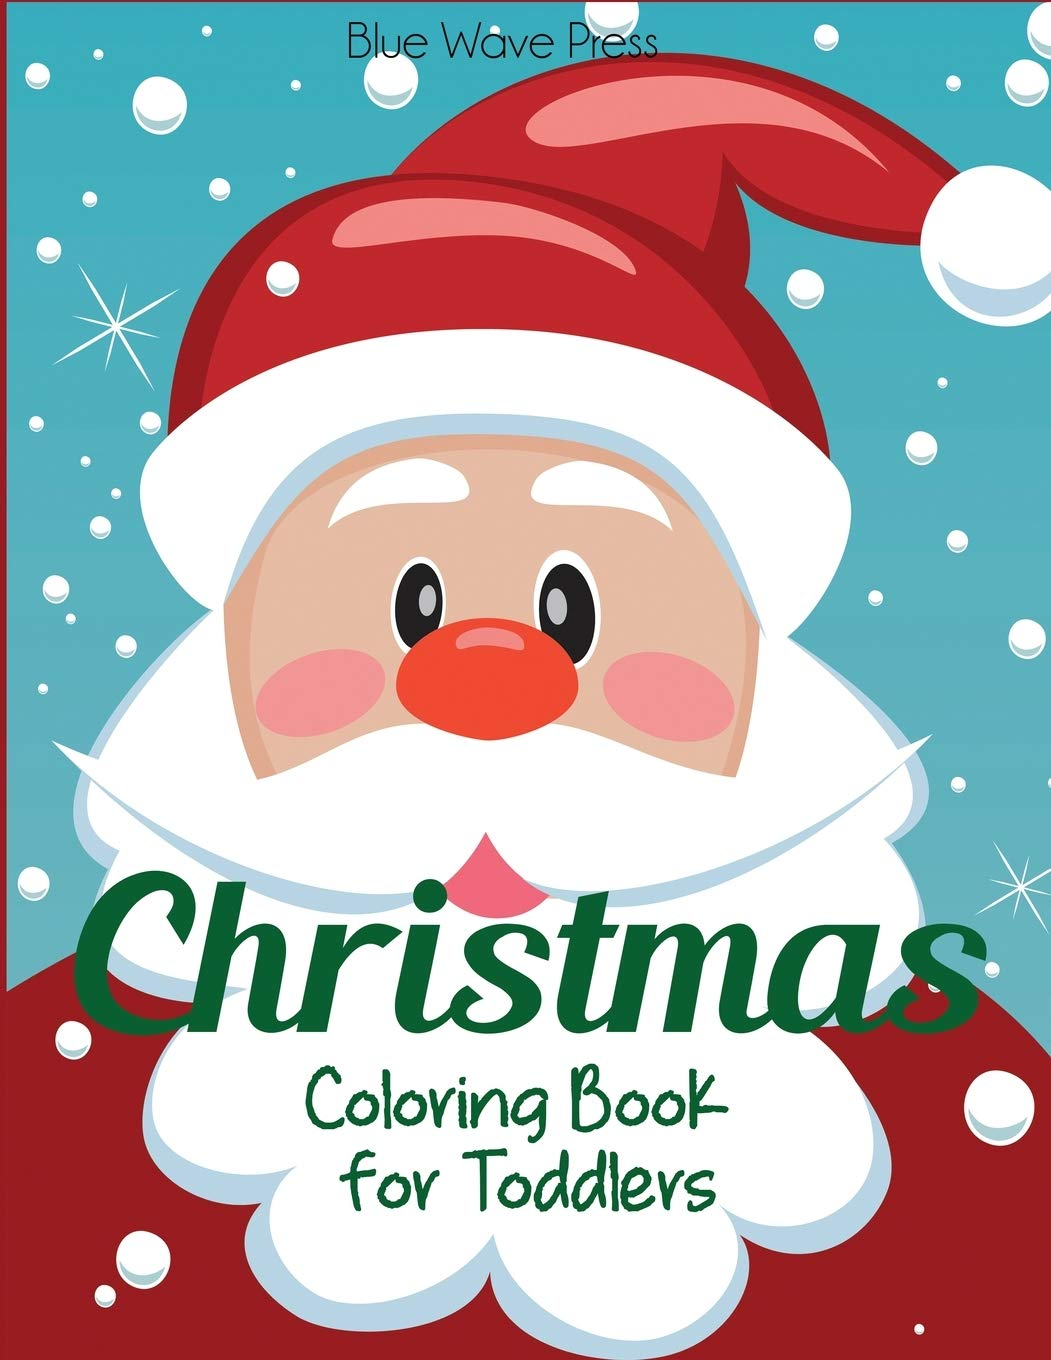 Image for Christmas Coloring Book for Toddlers: 50 Christmas Pages to Color Including Santa, Christmas Trees, Reindeer, Snowman